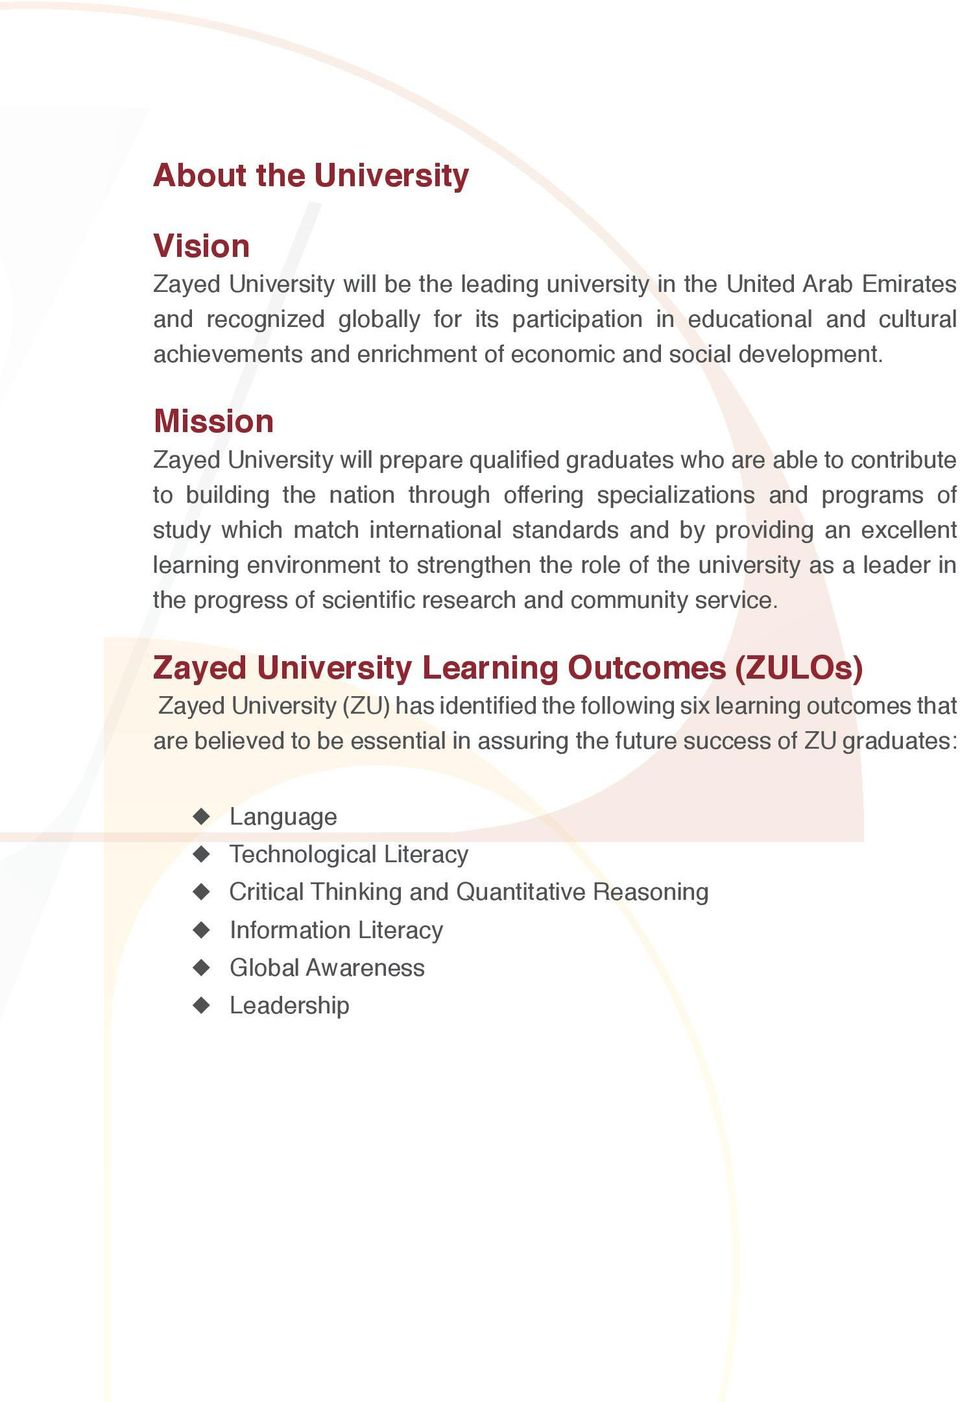 Mission Zayed University will prepare qualified graduates who are able to contribute to building the nation through offering specializations and programs of study which match international standards